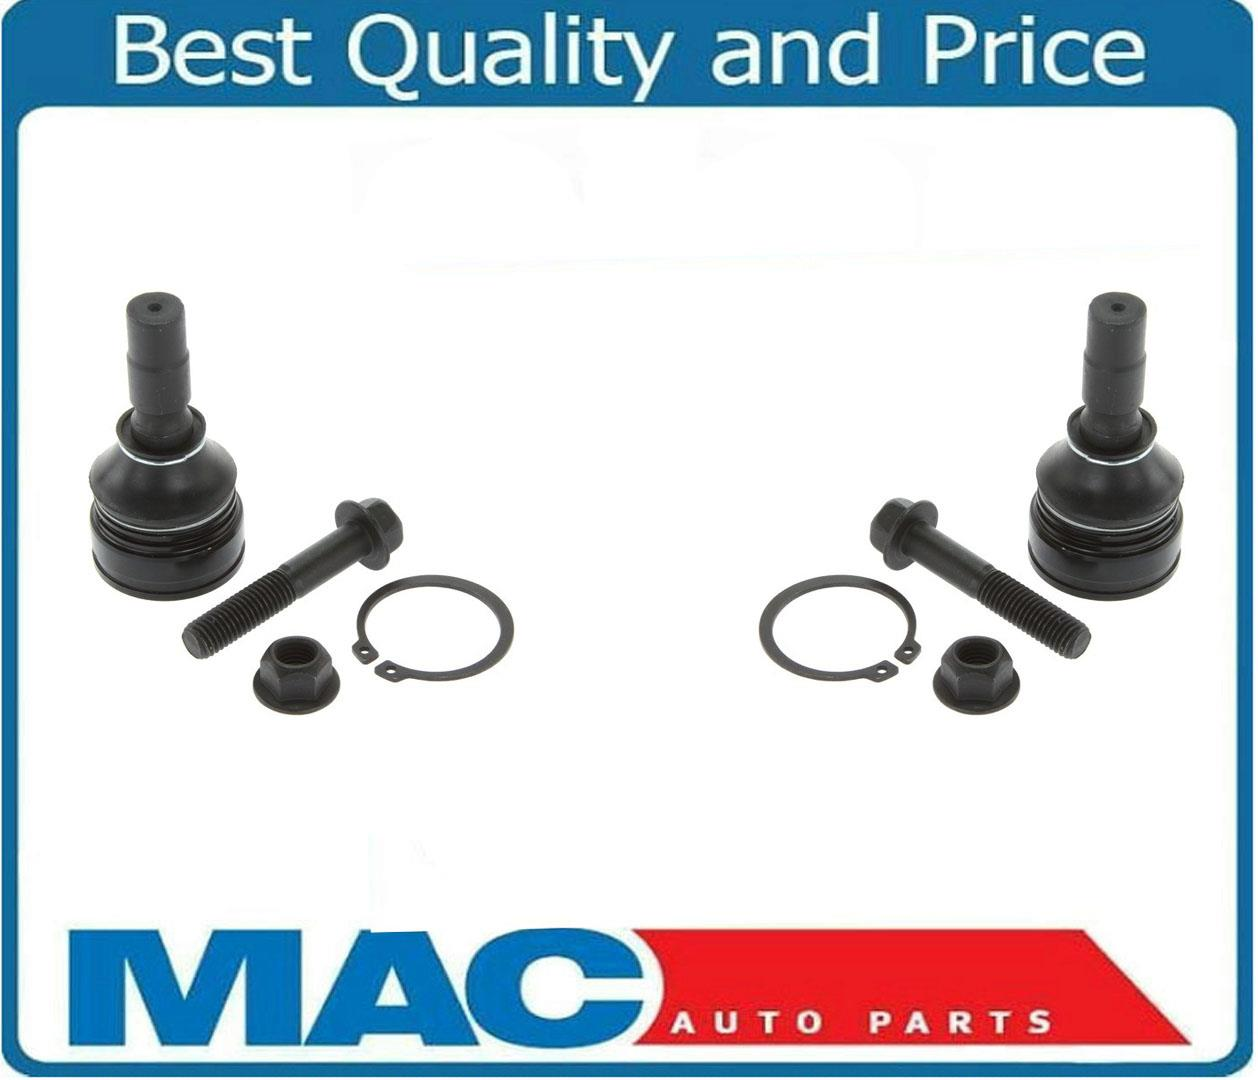 Rear Lower Suspension Ball Joint Pair for 07-13 Ford Expedition 07-12 Navigator